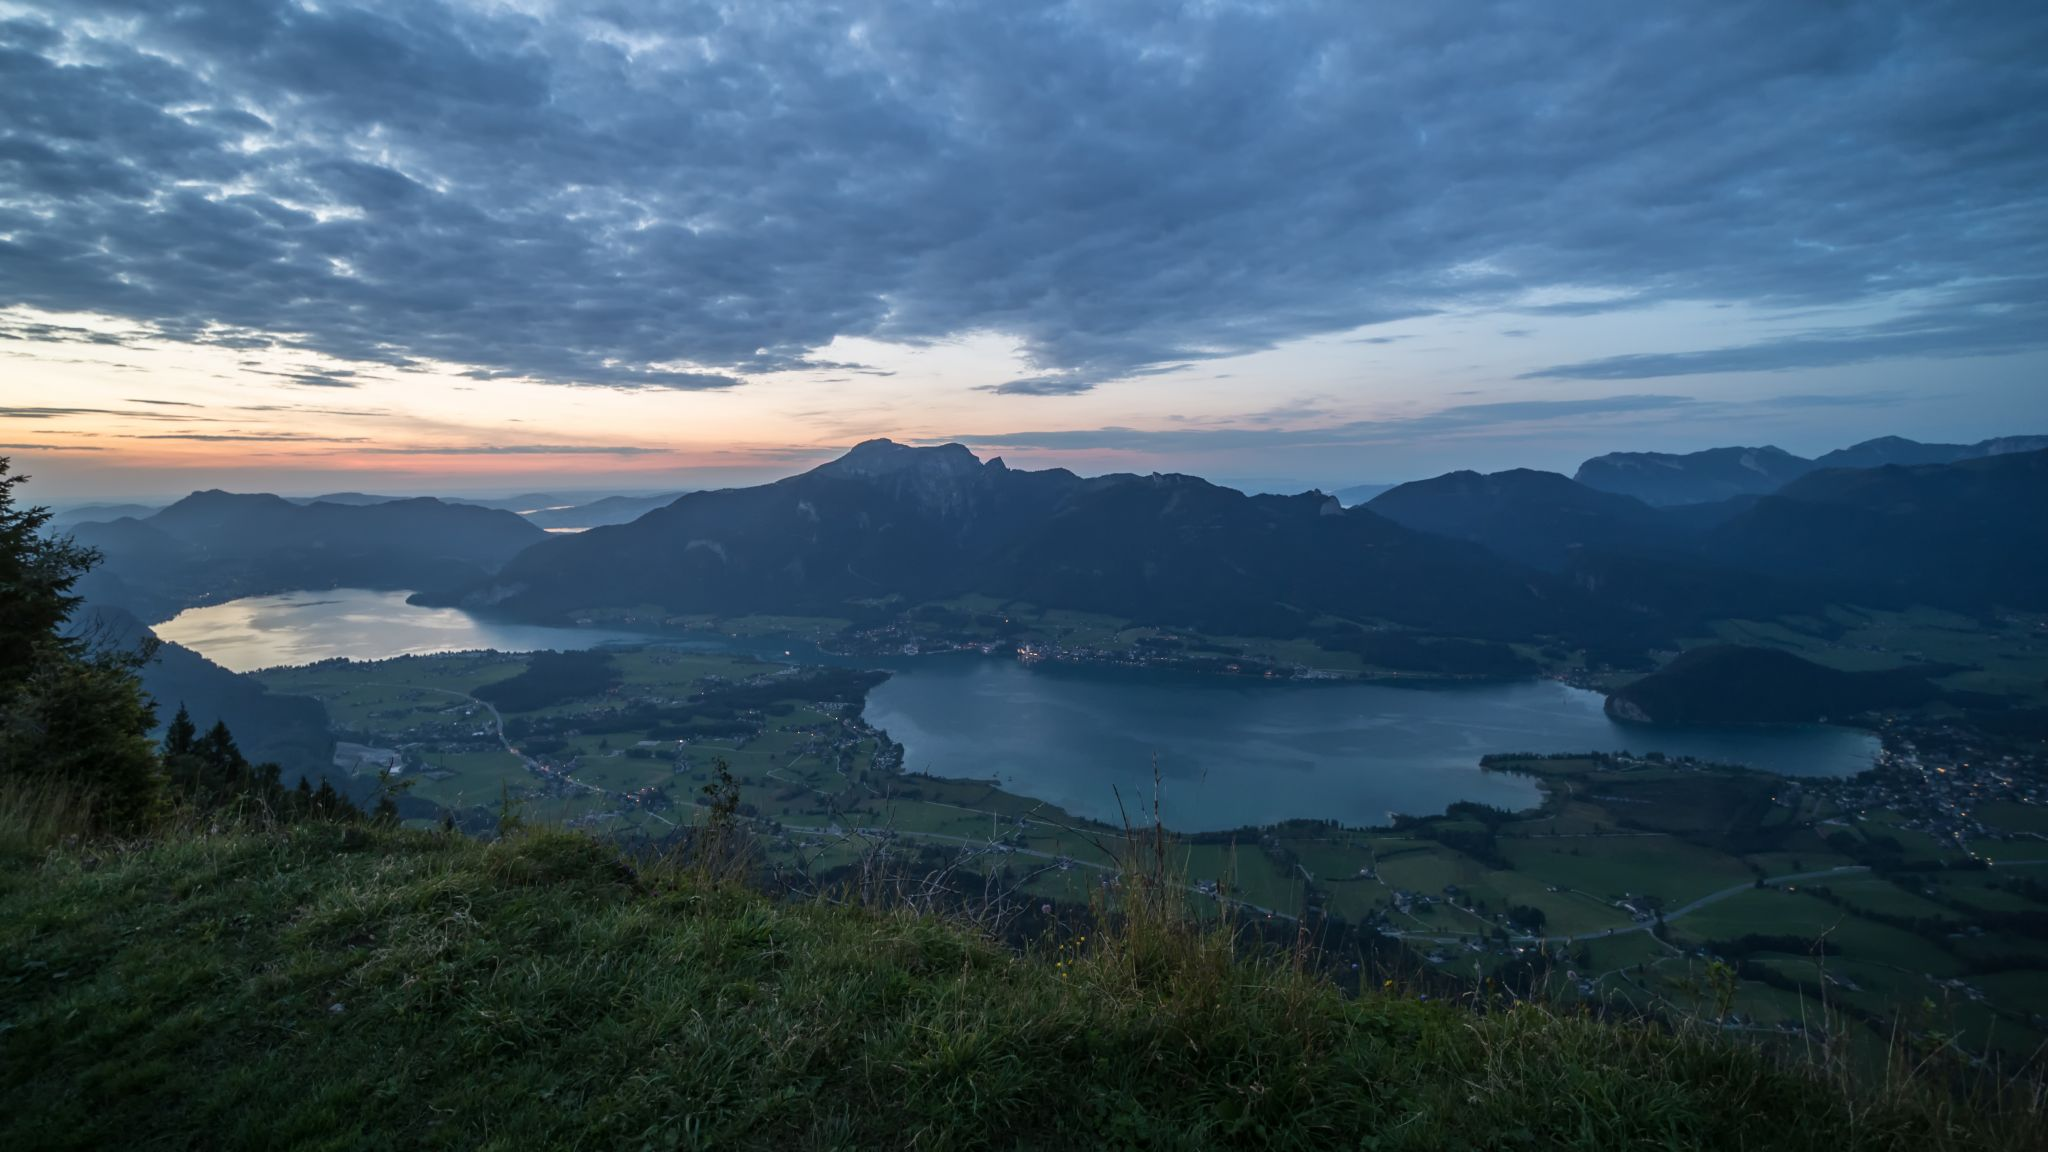 Wolfgangsee from Bleckwand, Austria